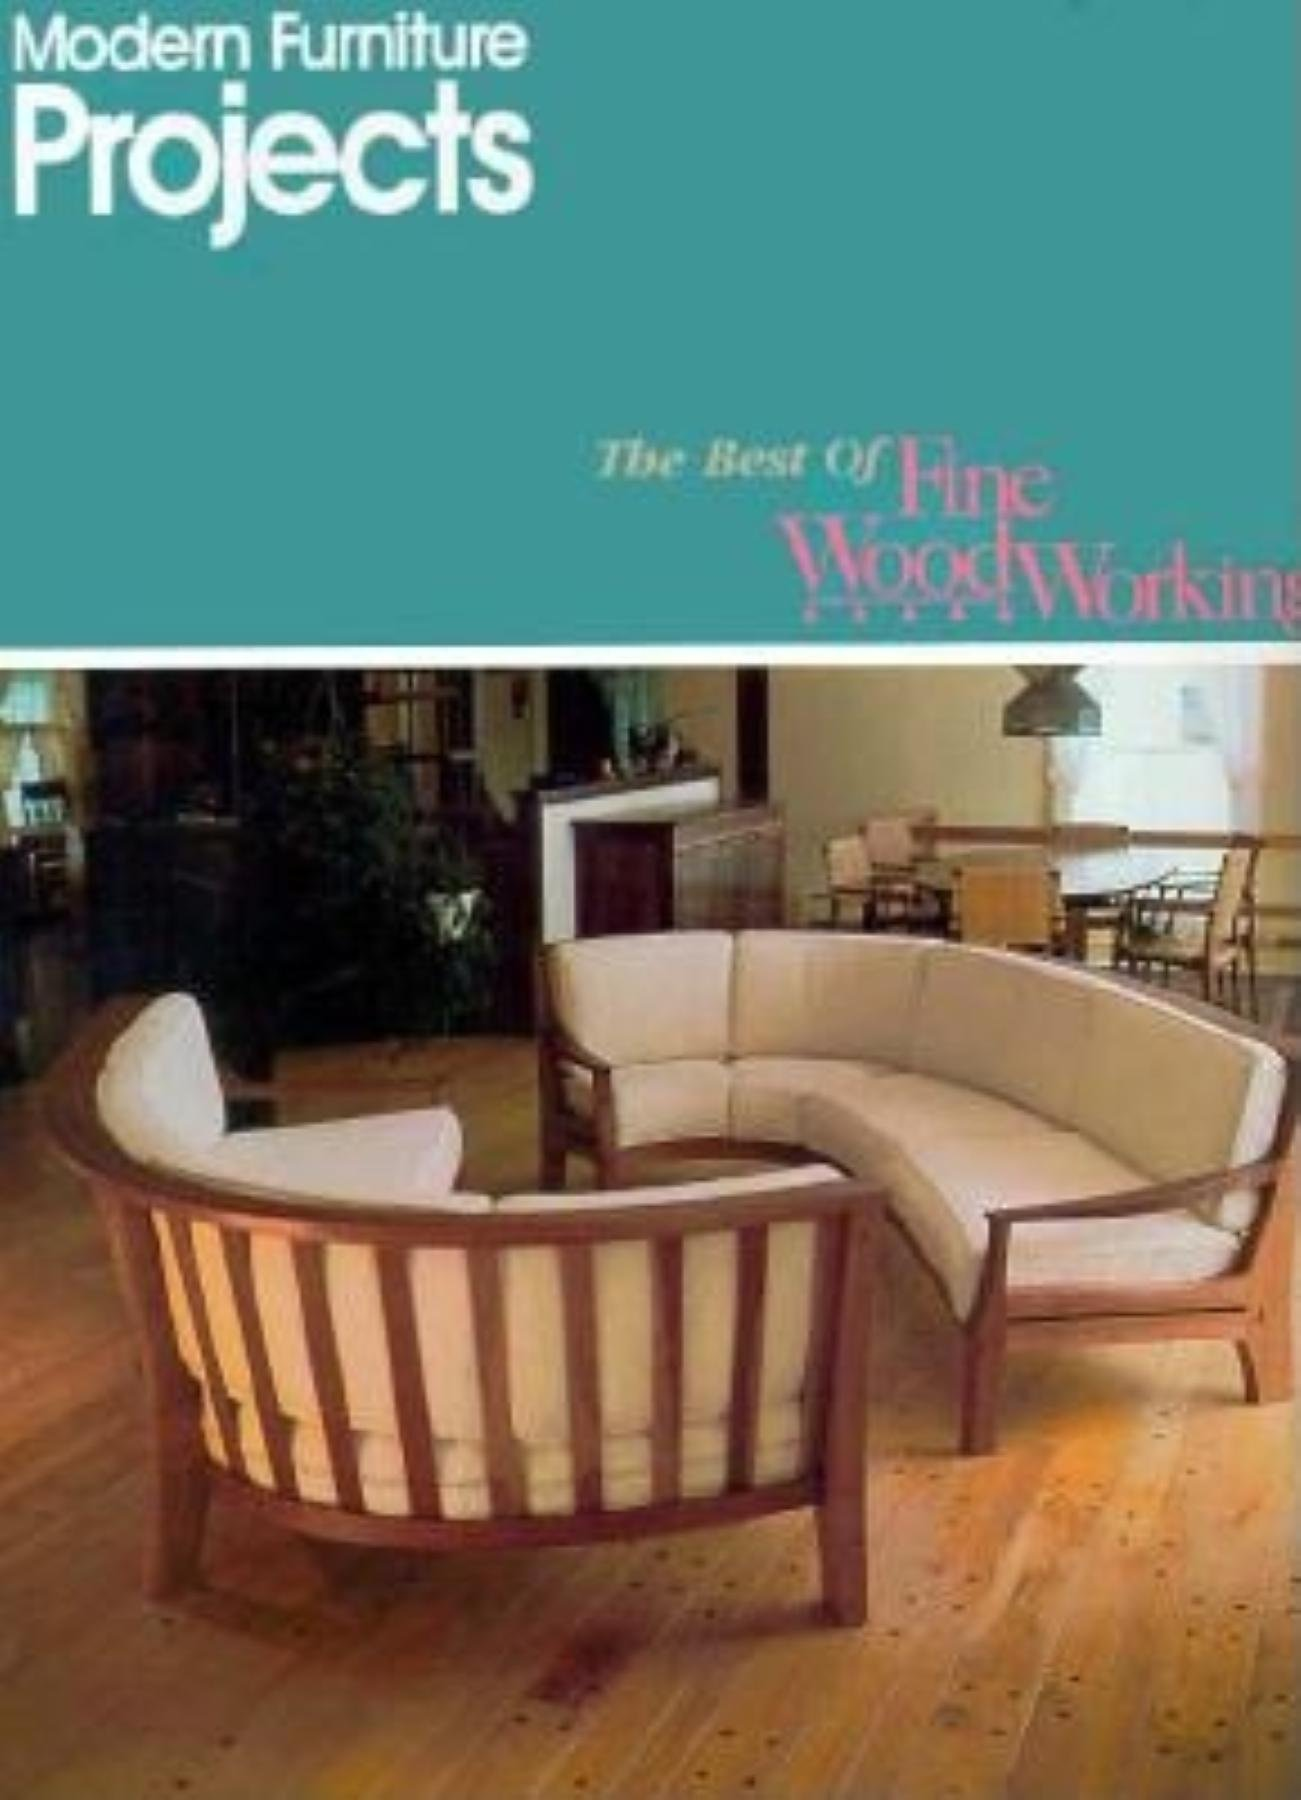 Modern furniture projects best of fine woodworking paperback april 1 1991